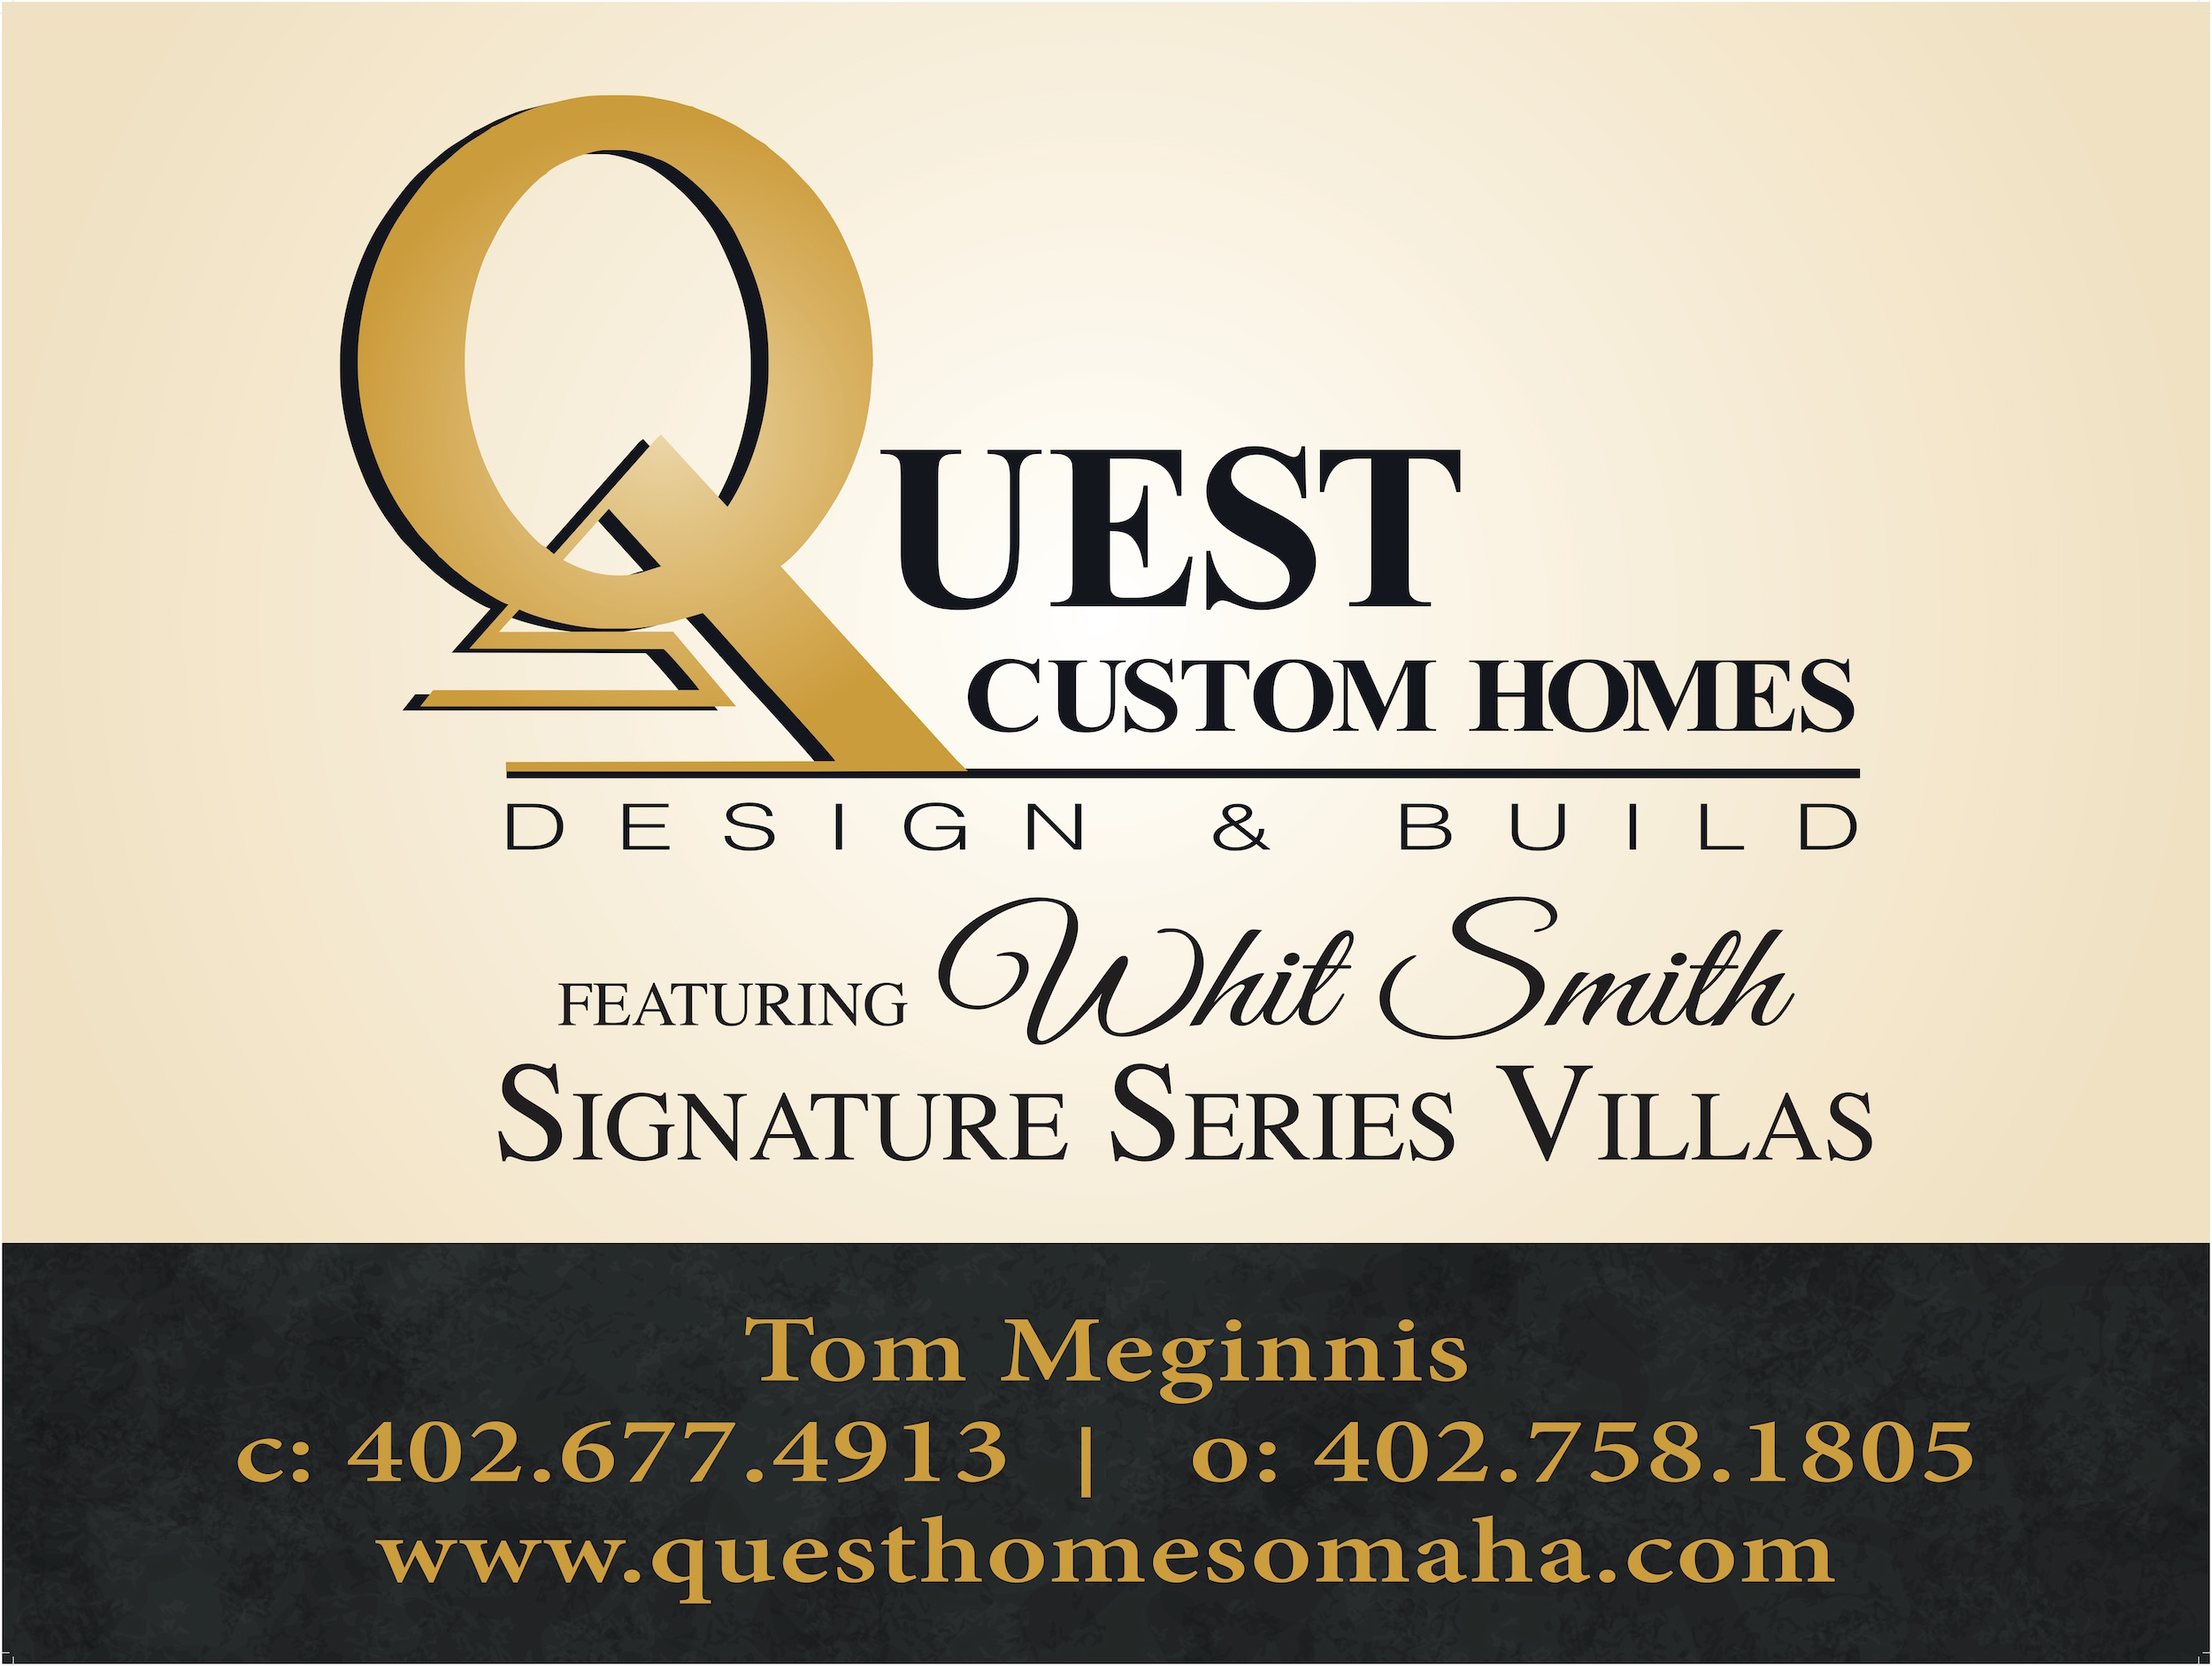 Quest_Sign_48x36_HR.jpg